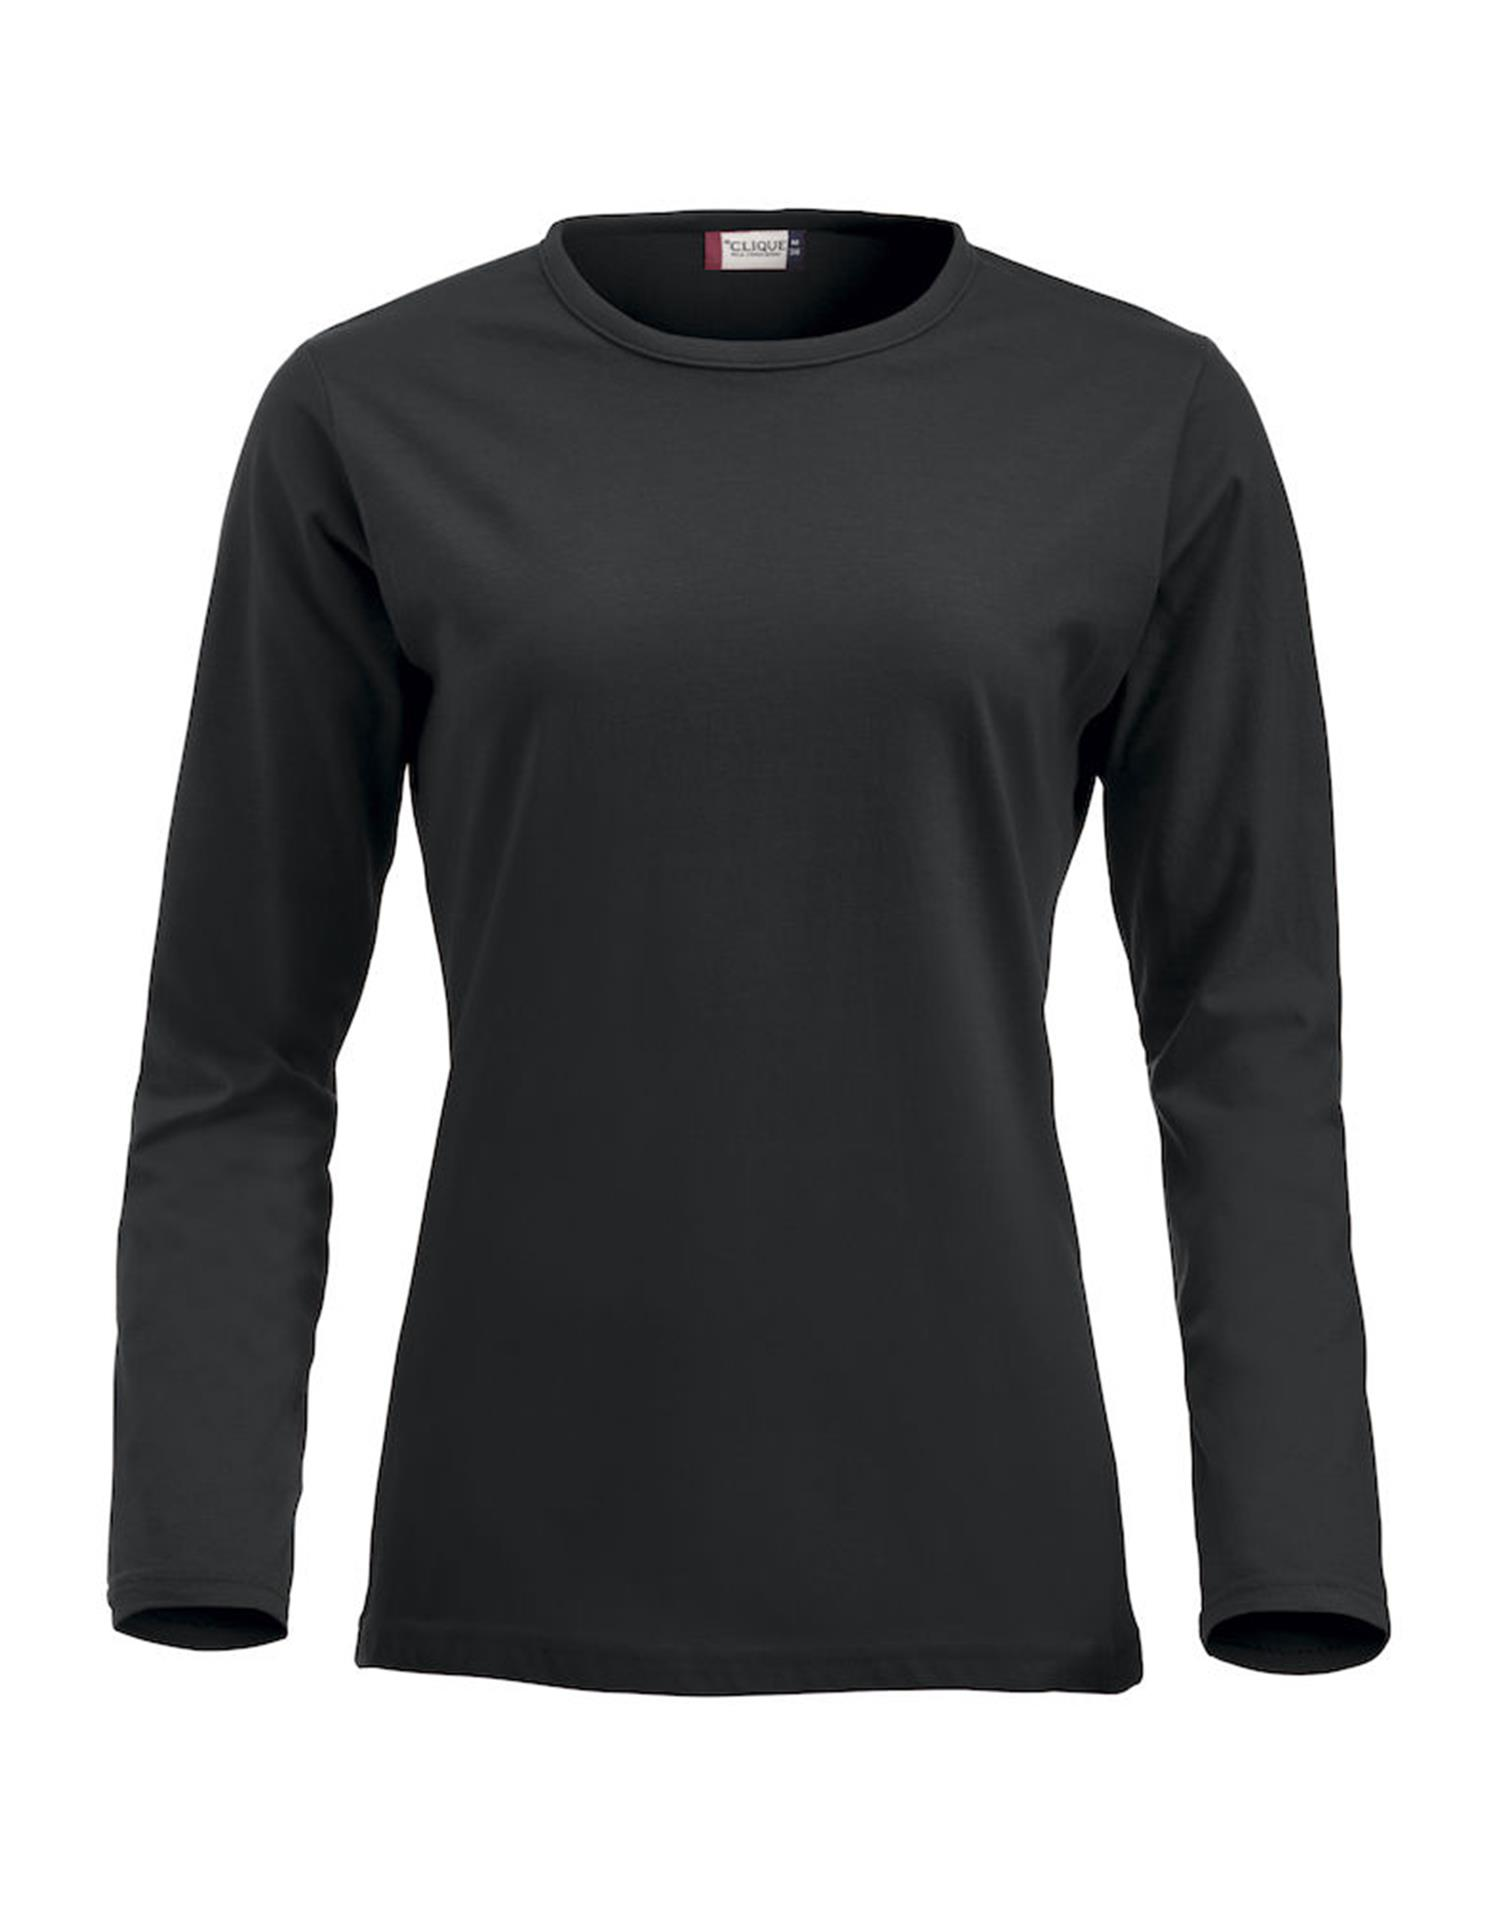 NewWave Fashion-T Ladies Long Sleeve (3XL - NERO)